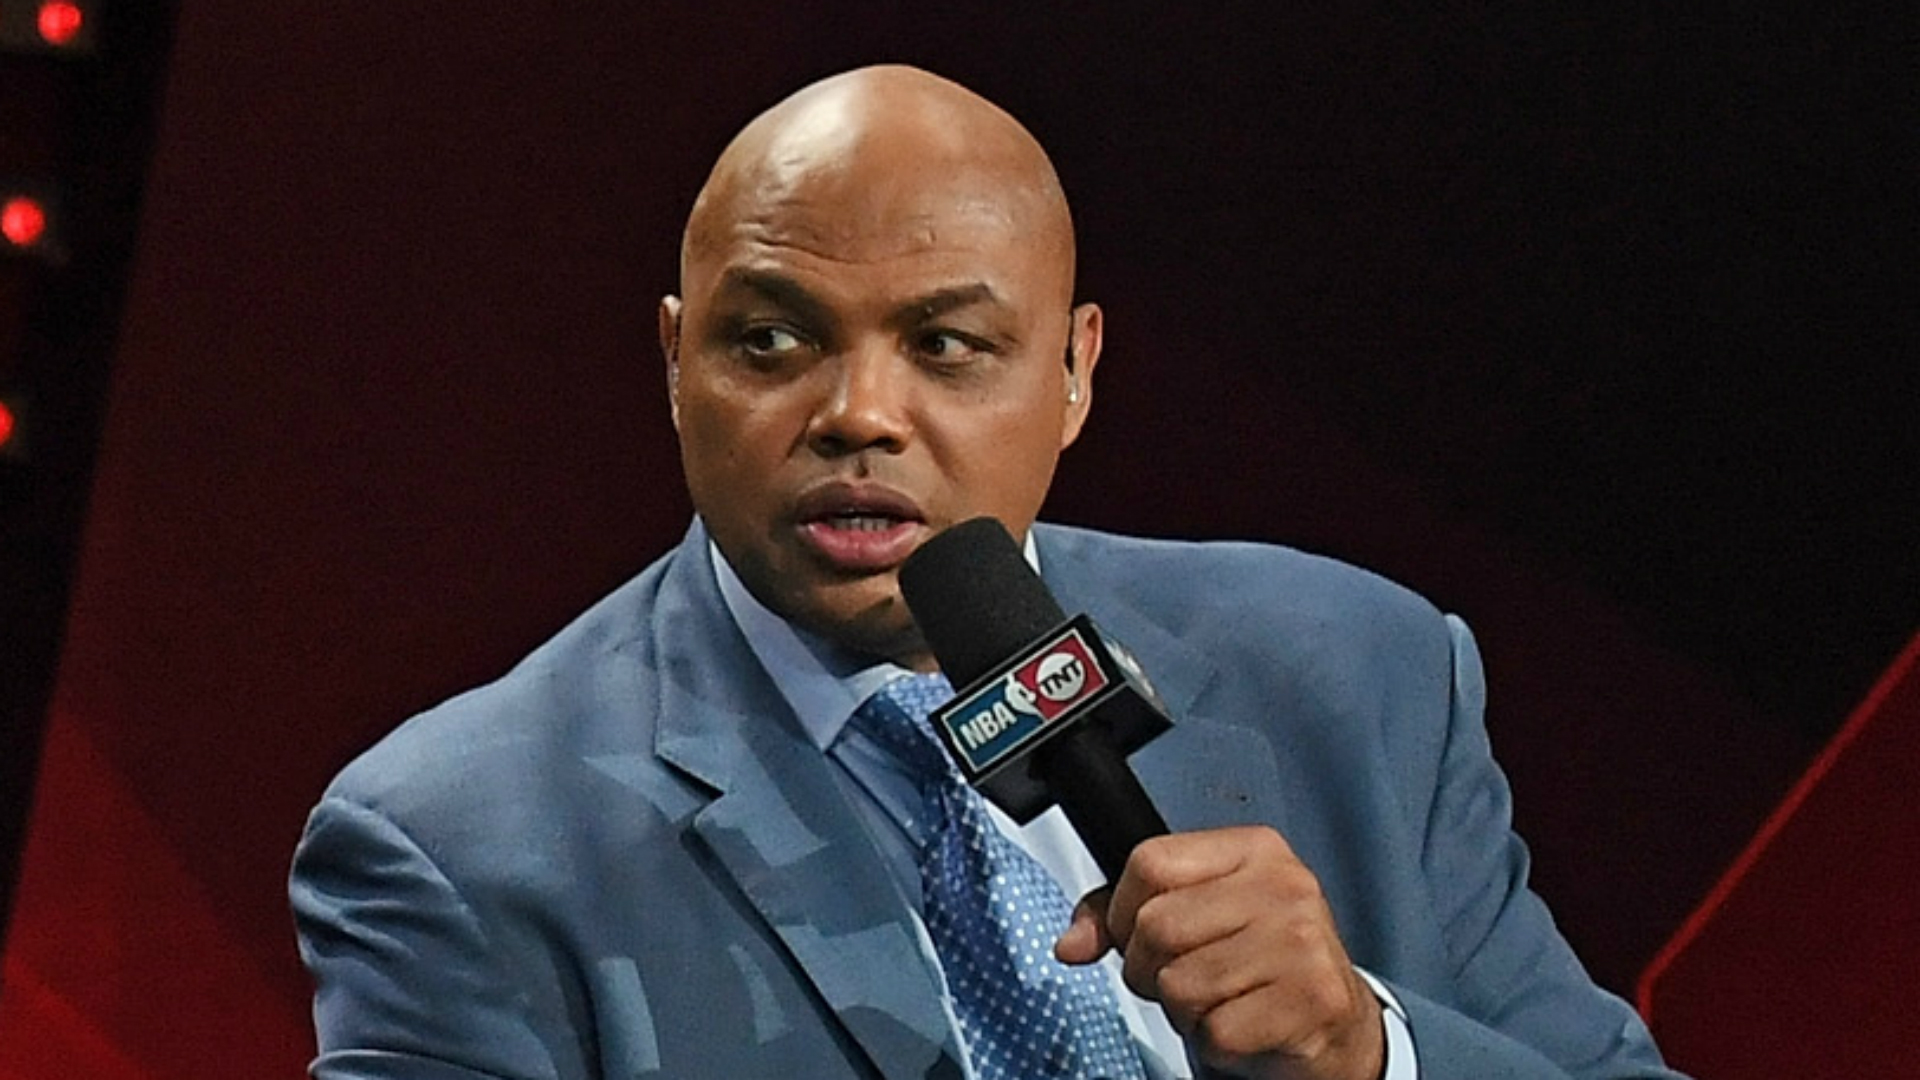 Charles Barkley on NBA playoffs blowouts: 'Thank God for